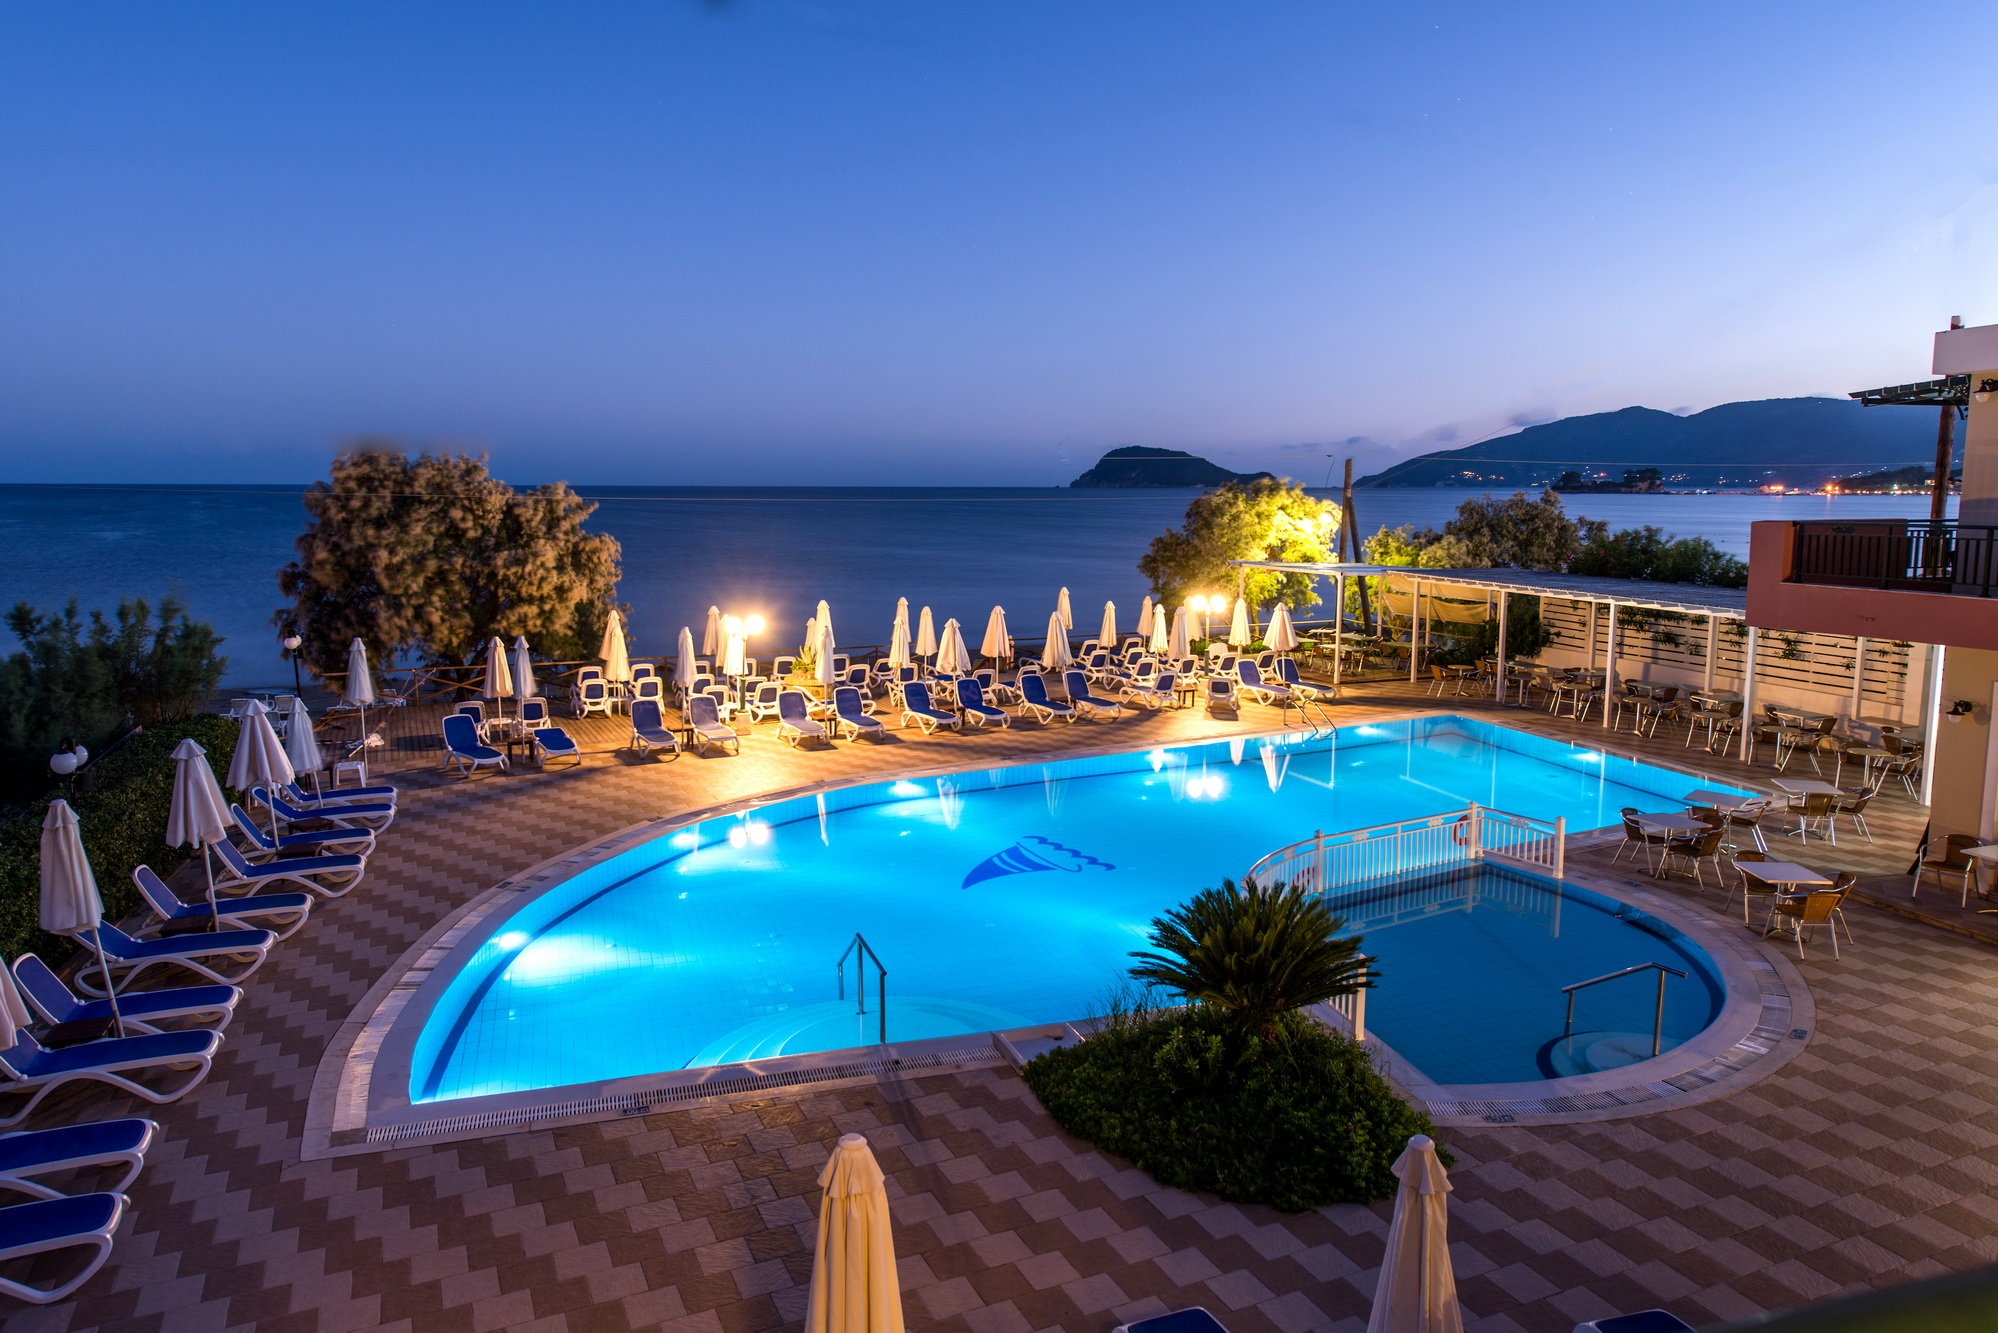 Rooms At Mediterranean Beach Hotel Zante